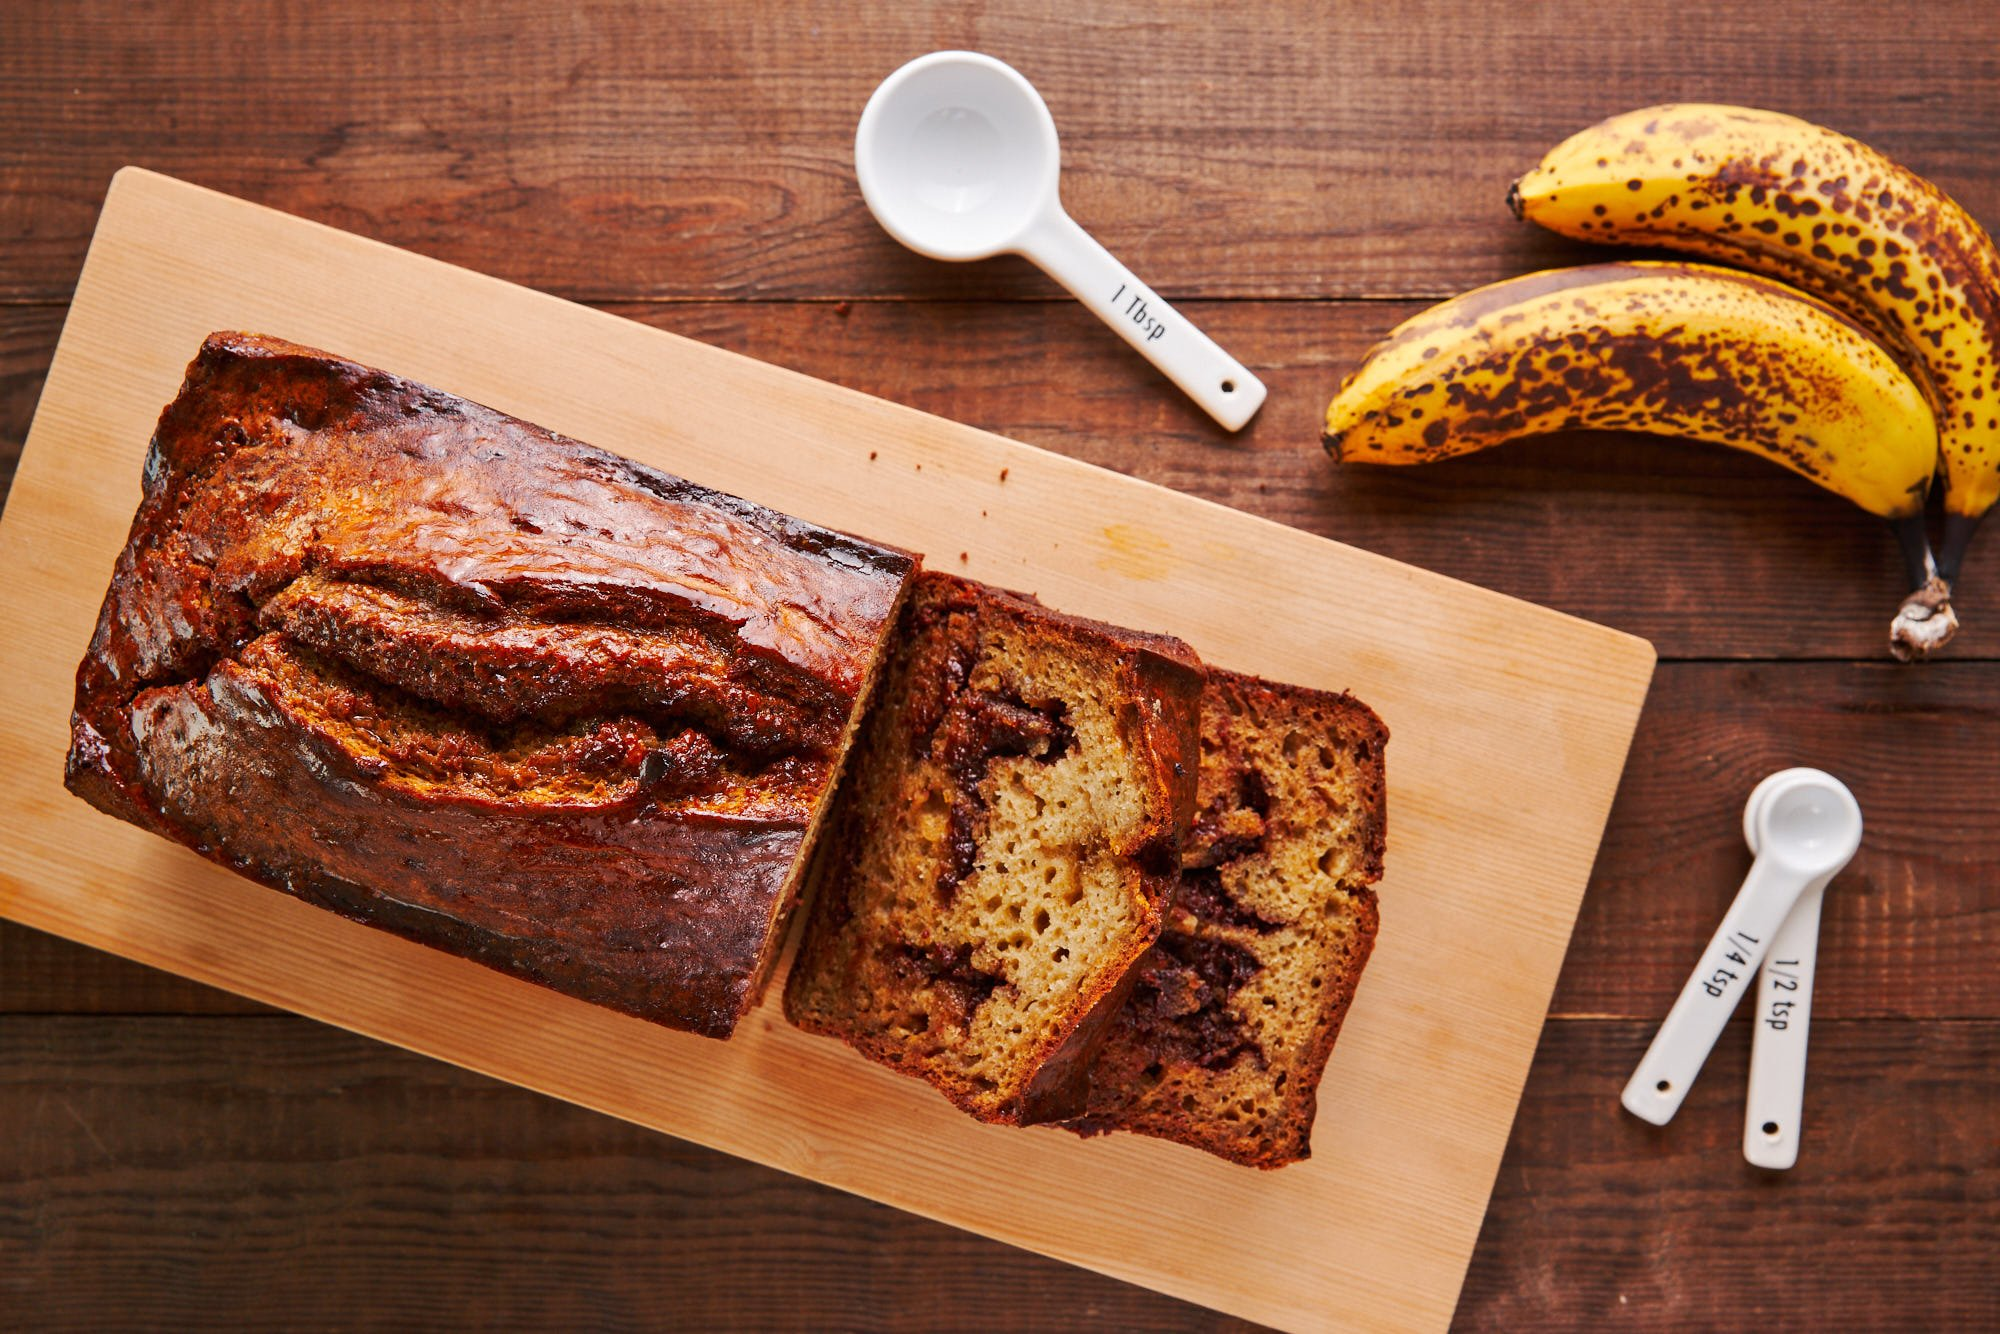 Slices of chocolate chunk banana bread on a wooden cutting board.